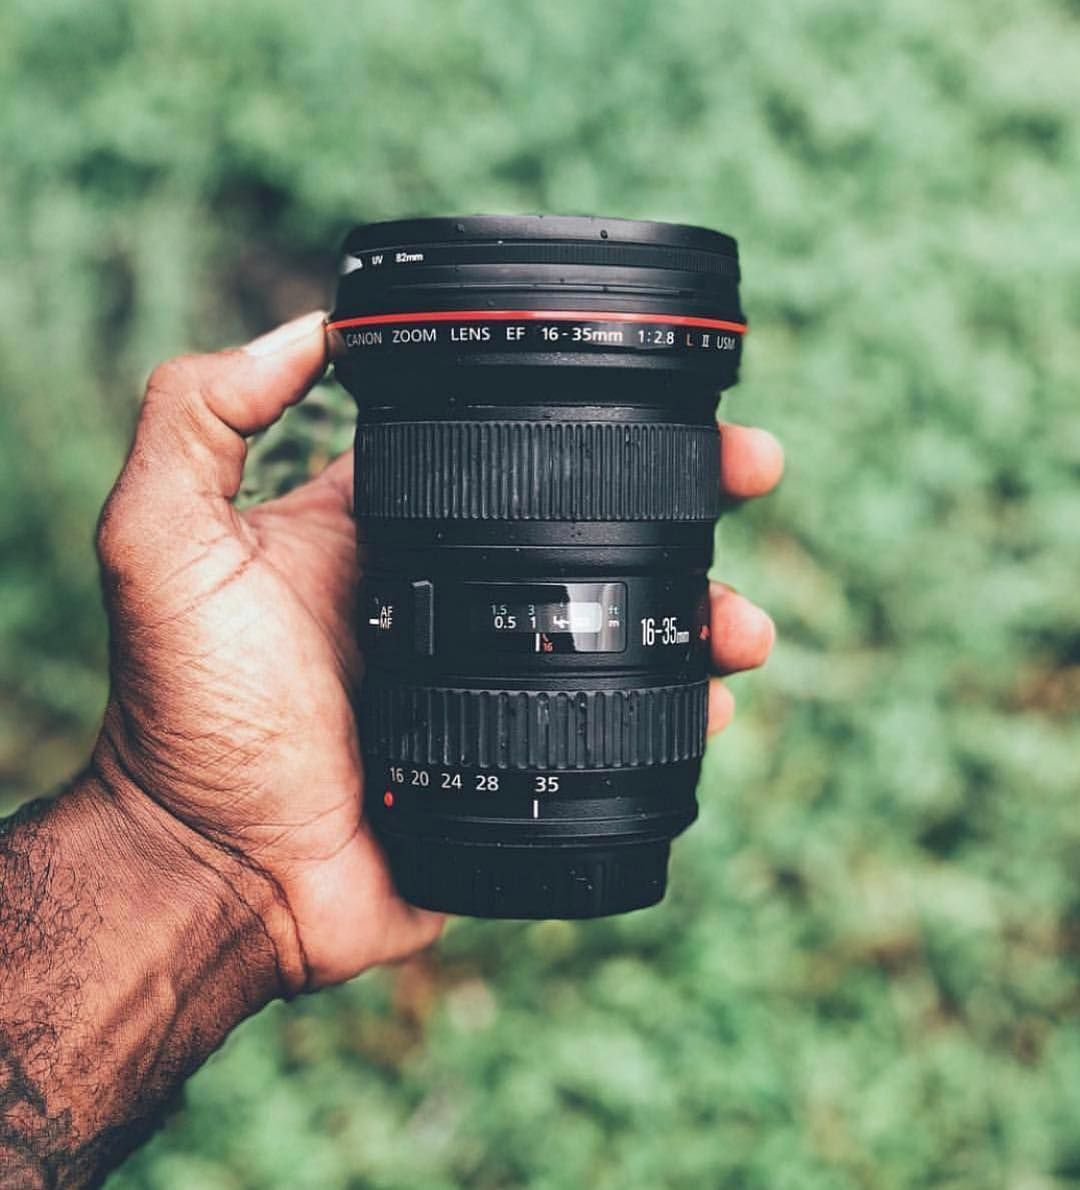 Canonframes On Instagram Awesome Shot Of The Canon 16 35 F 2 8l Lens Photo By Lenscooper We Are Now Selling Camera Top Handles Clic